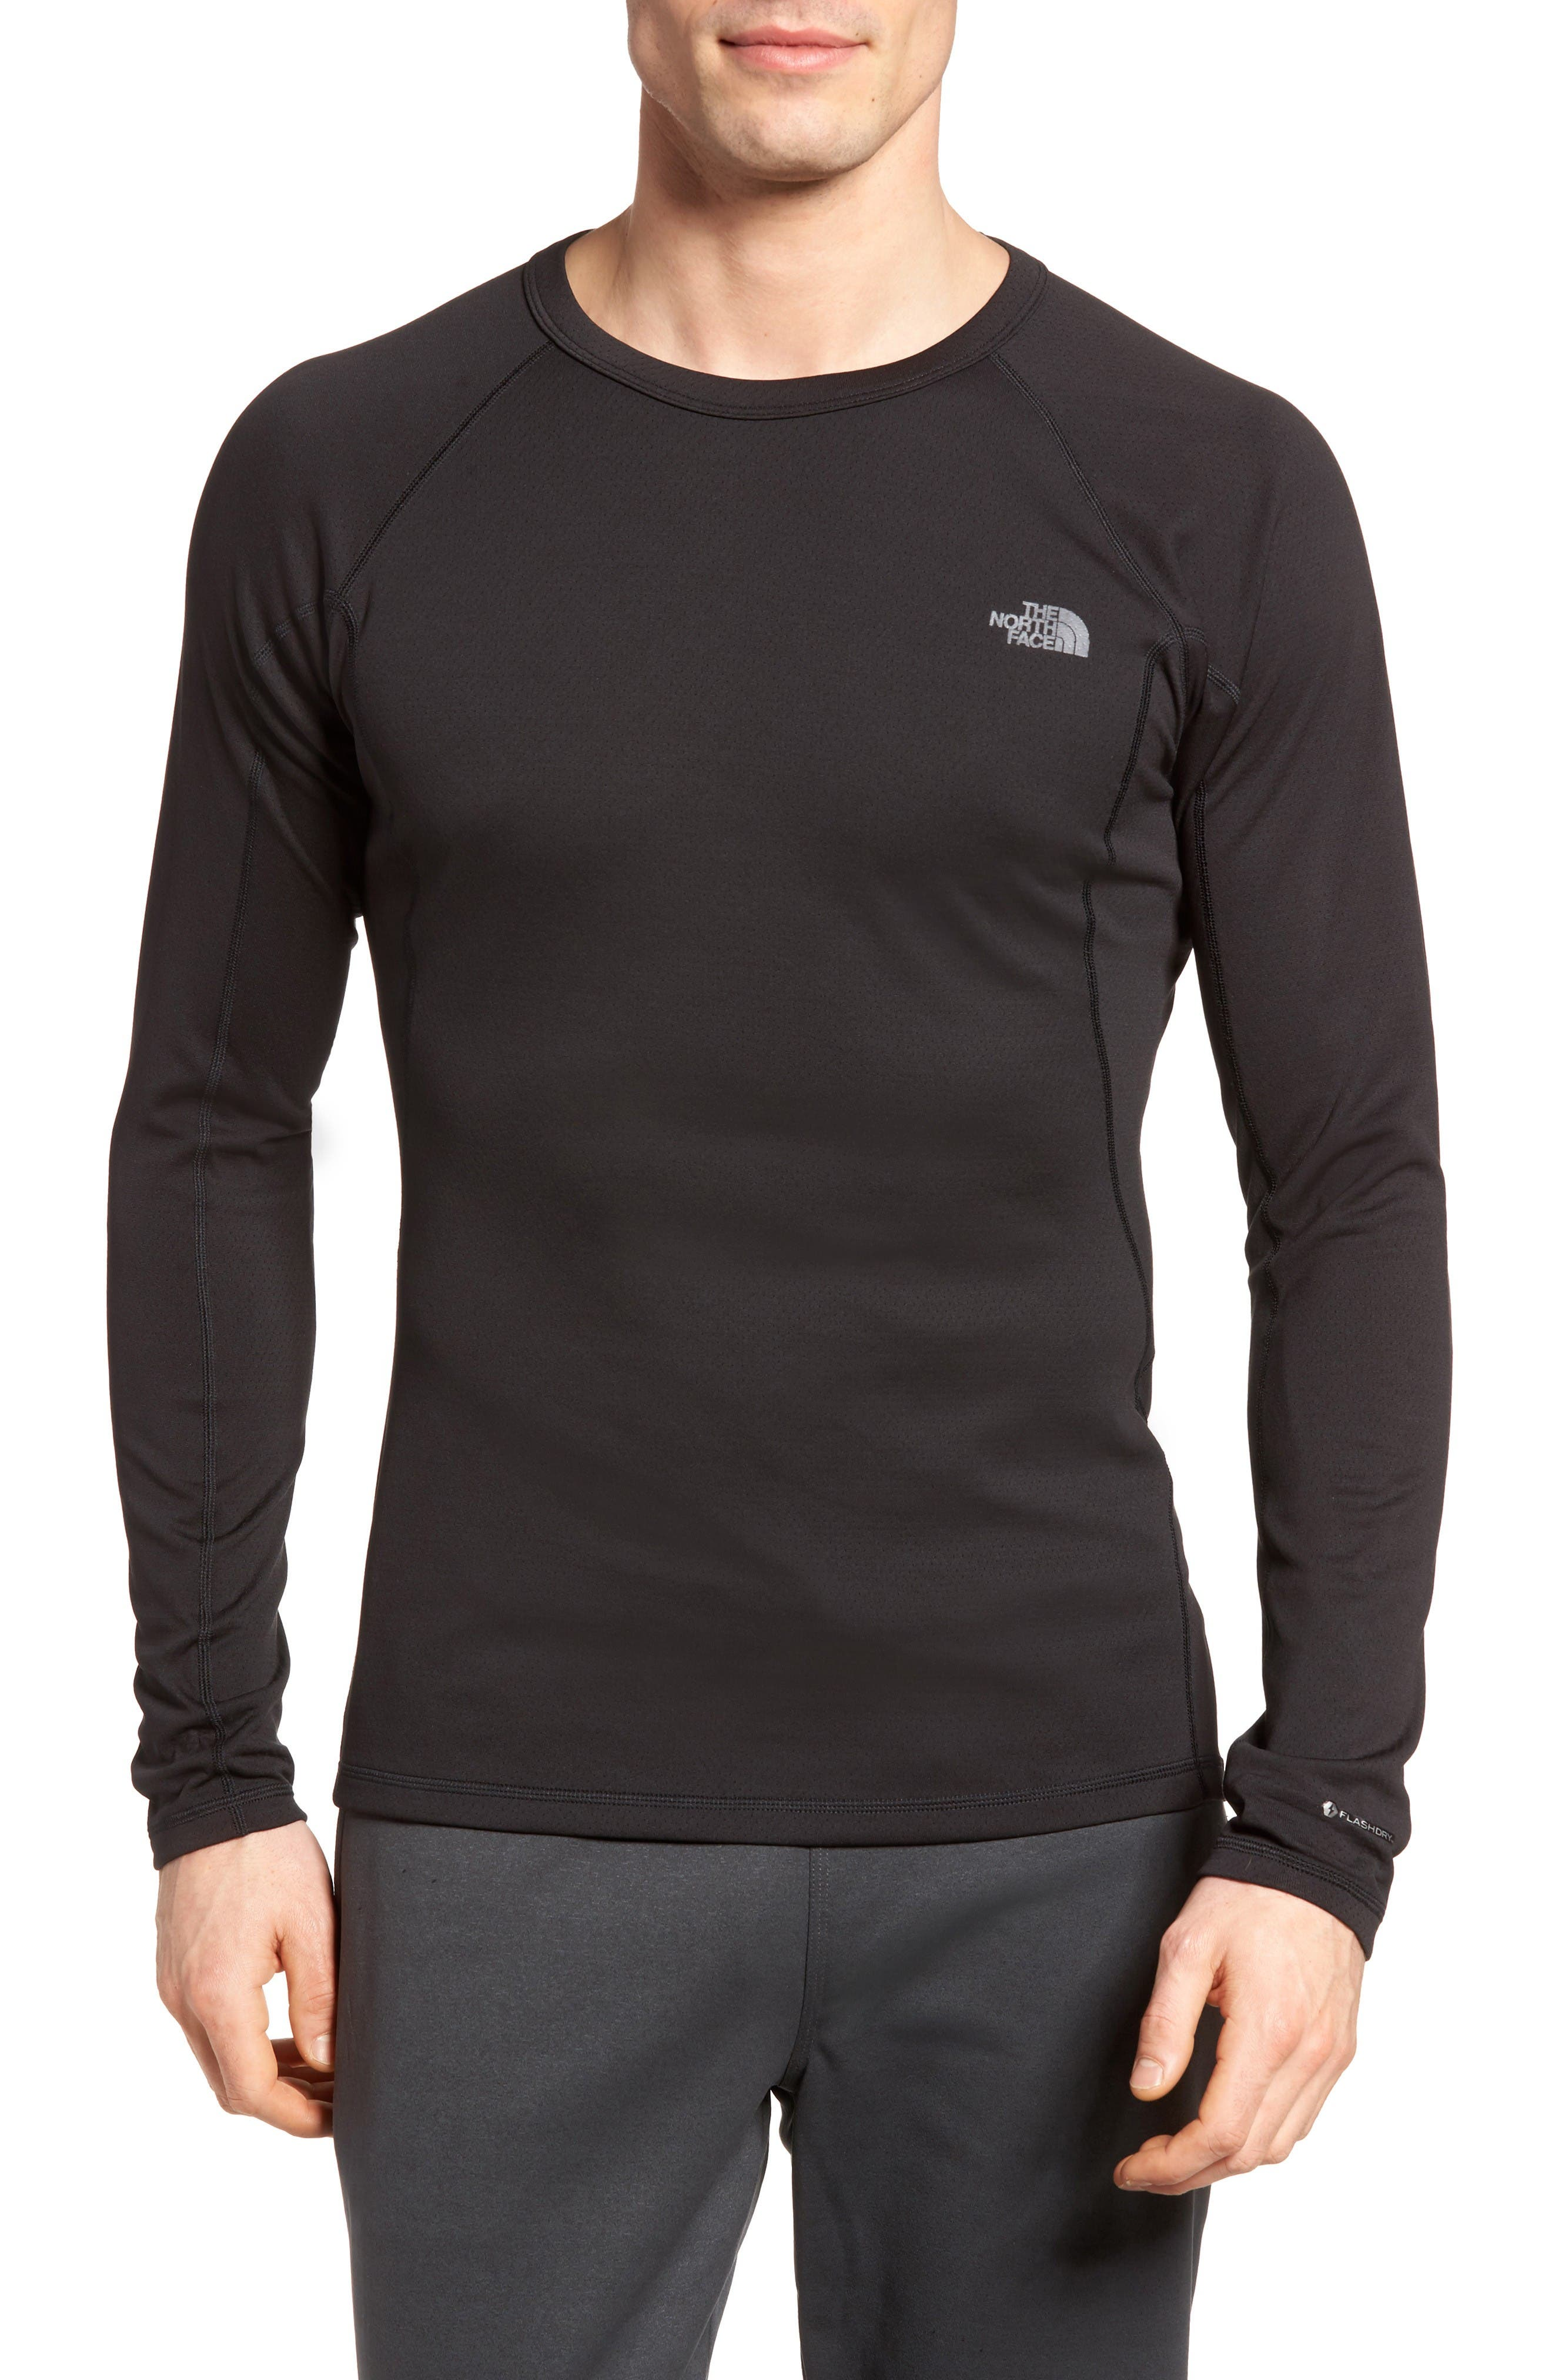 THE NORTH FACE Warm Shirt